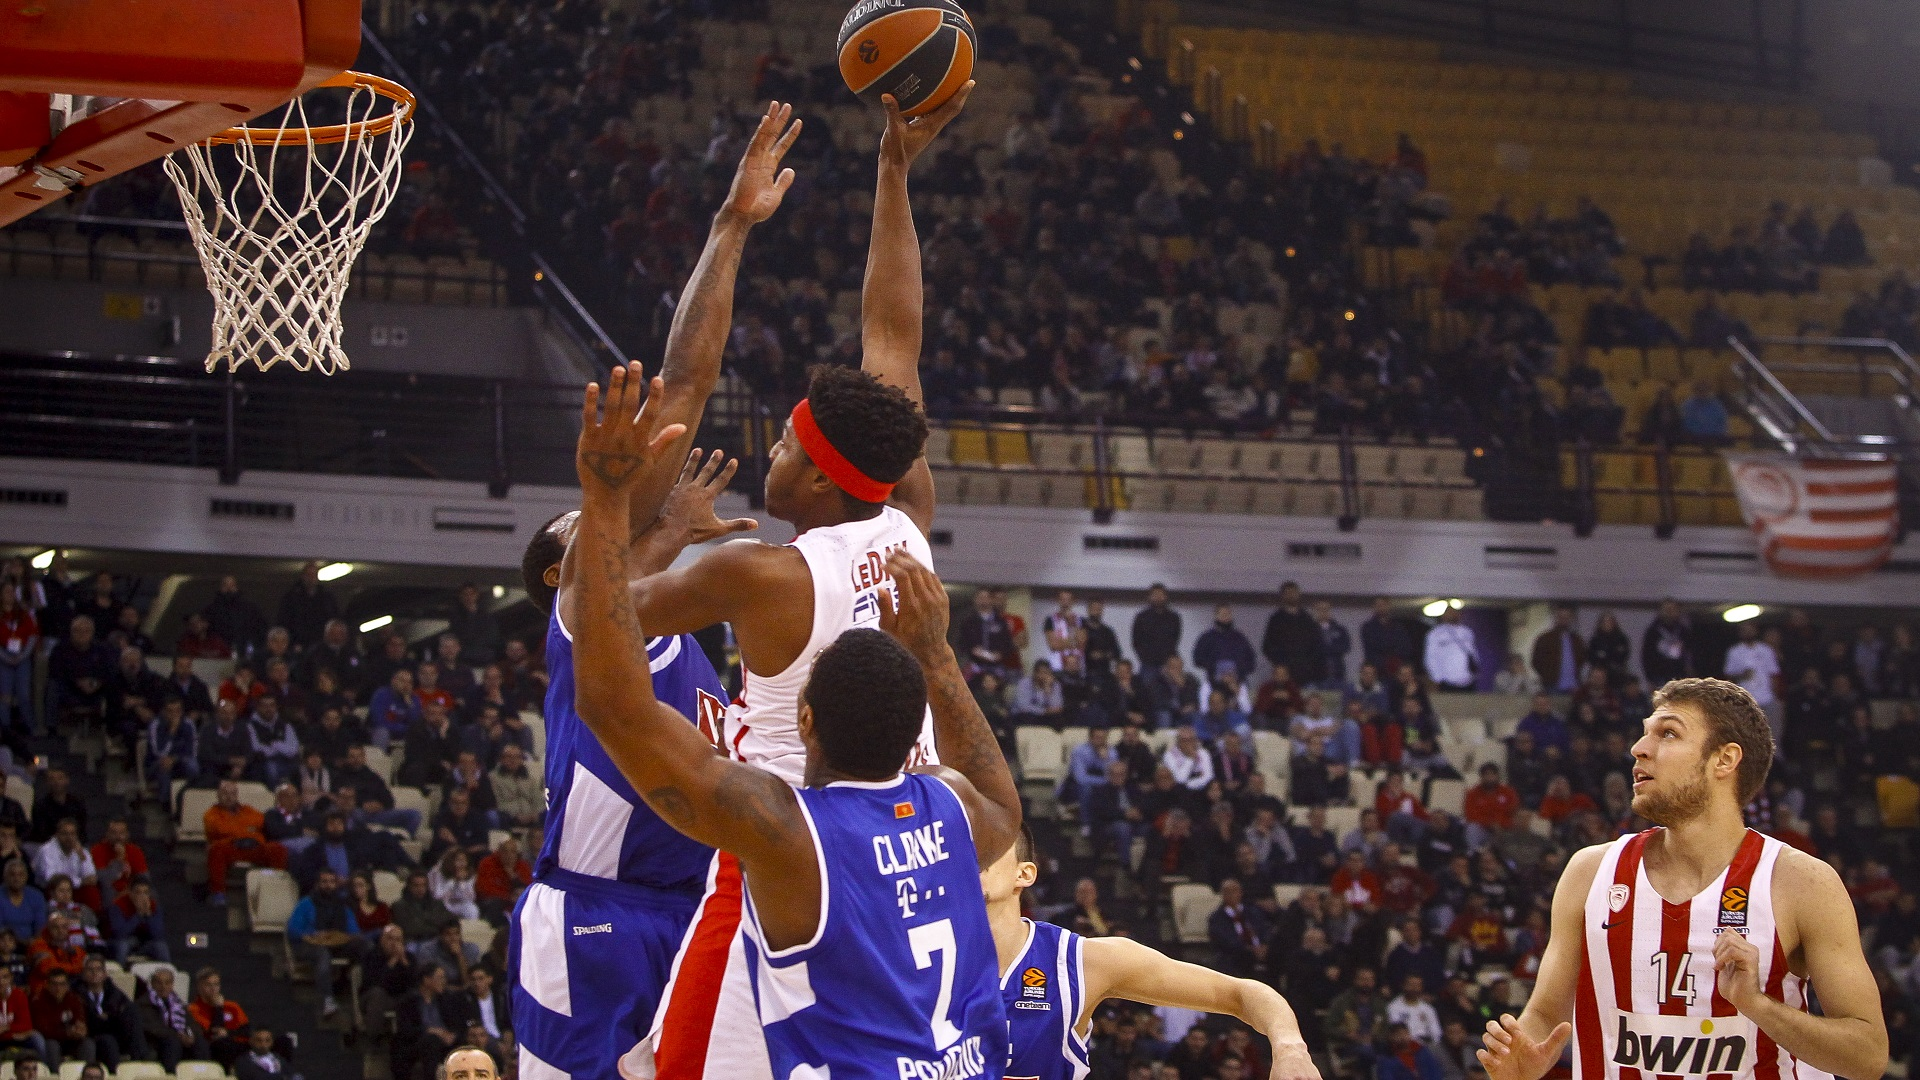 An easy victory over Buducnost